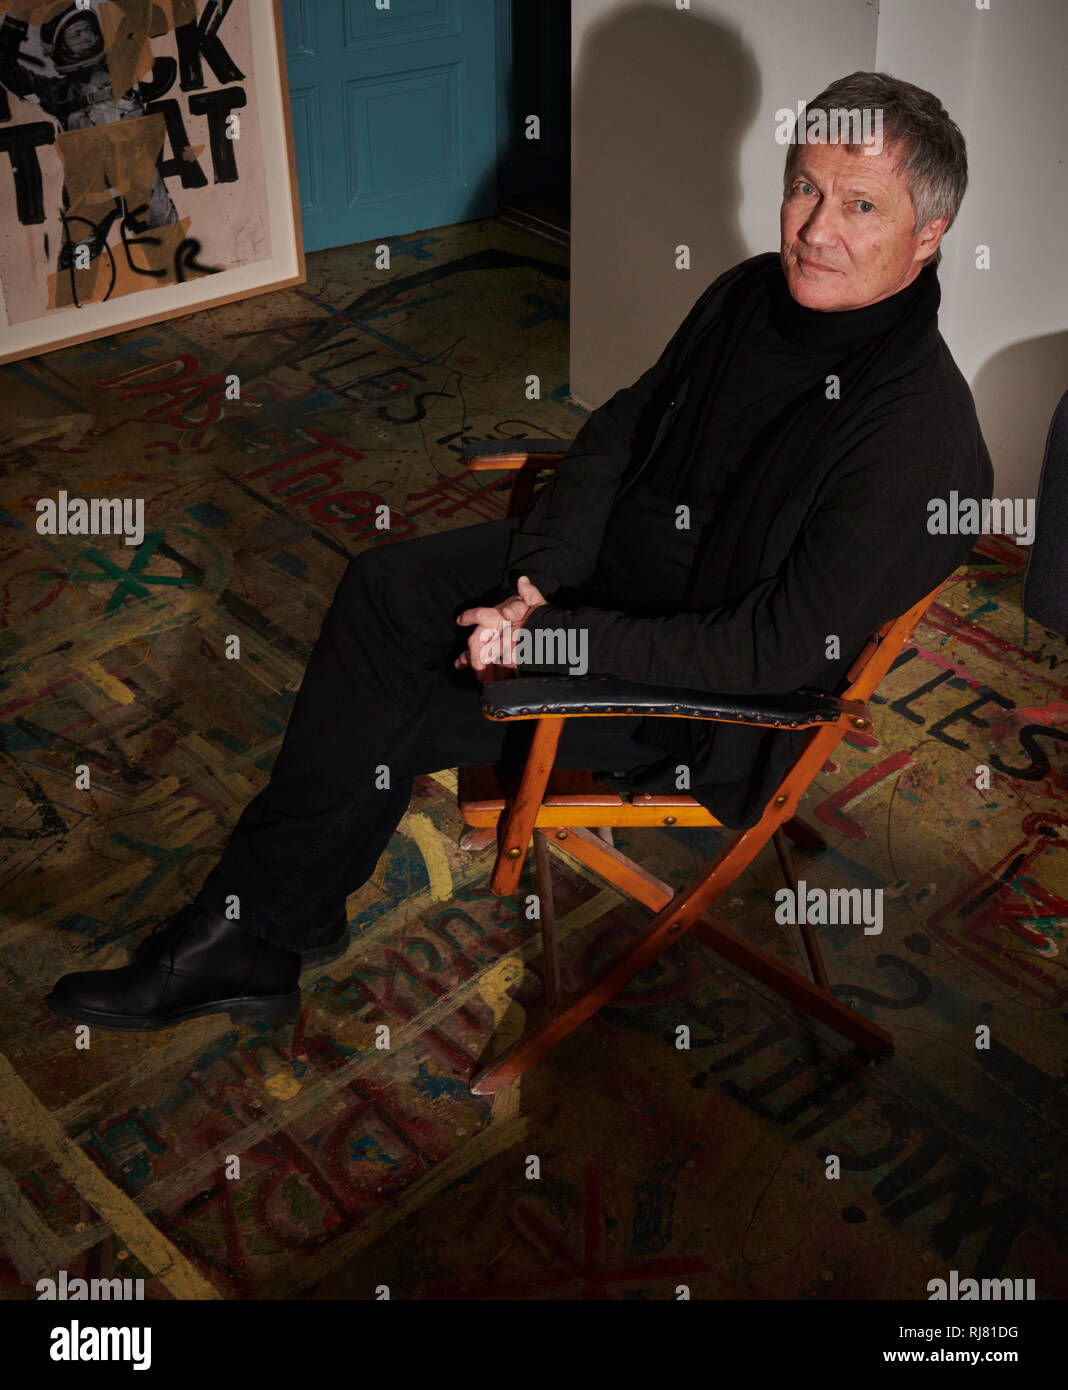 17 January 2019, Berlin: The musician Michael Rother sits on a chair in his record label Grönland Office. His new album 'Solo' will be released on 22.02.2019. Photo: Annette Riedl/dpa - Stock Image